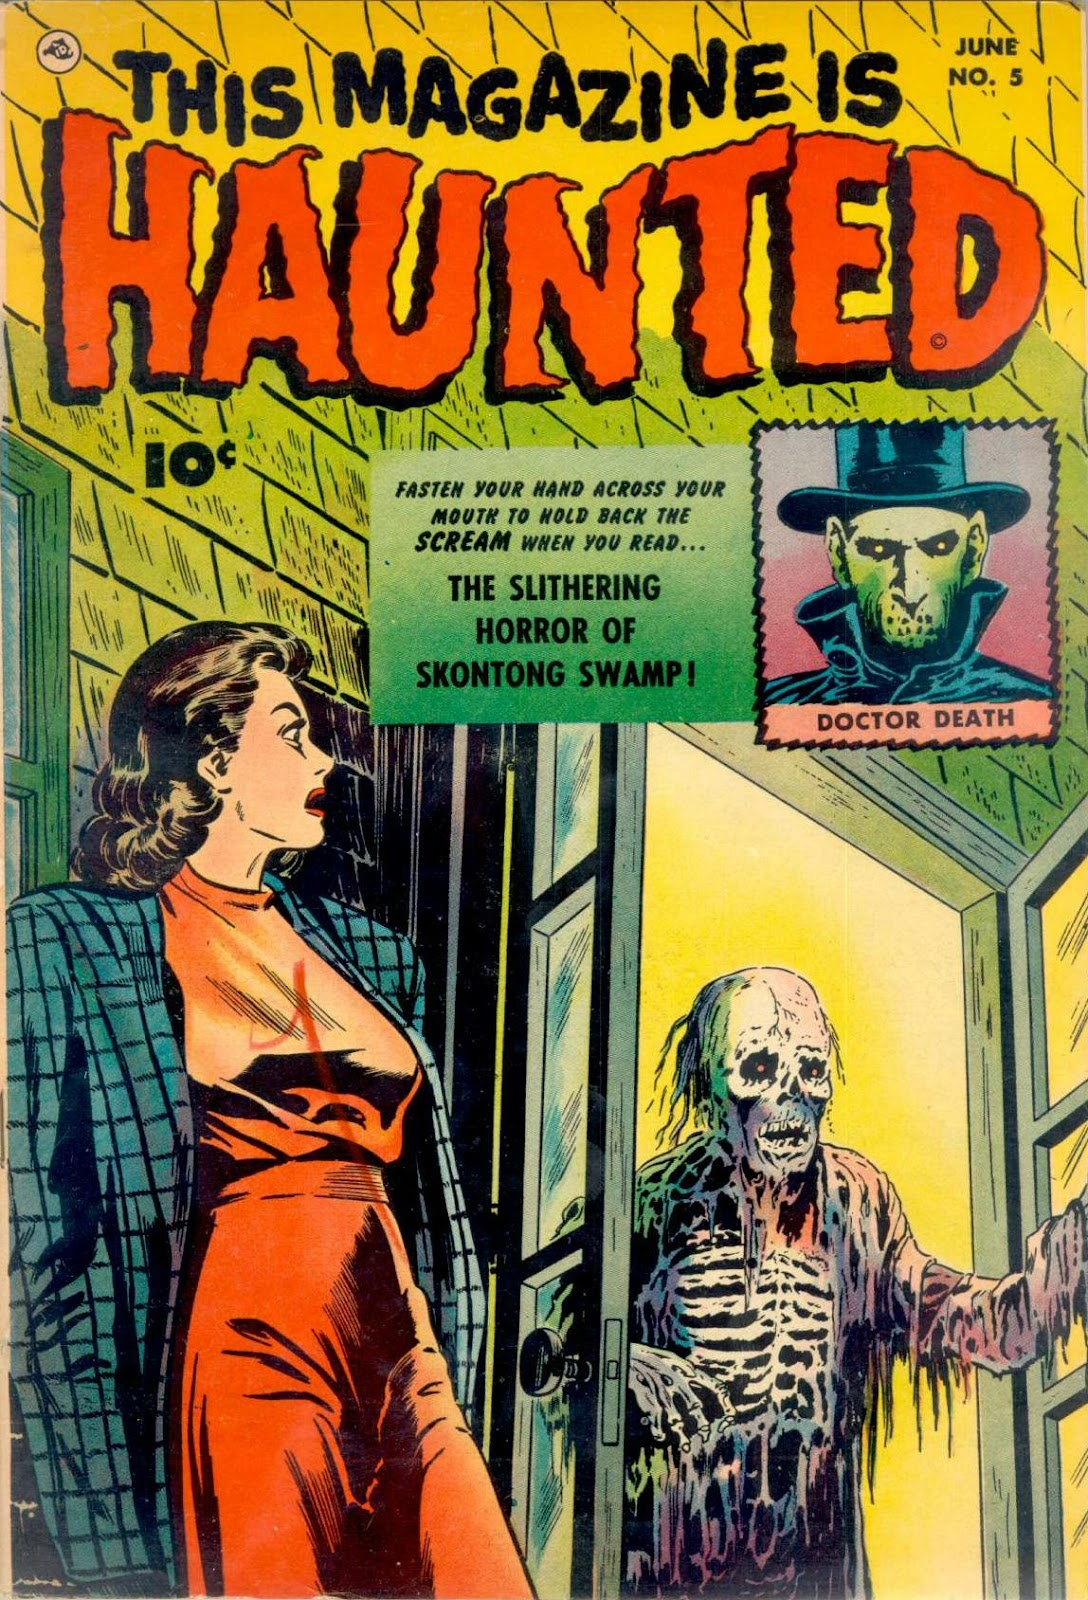 Read online This Magazine Is Haunted comic -  Issue #5 - 1